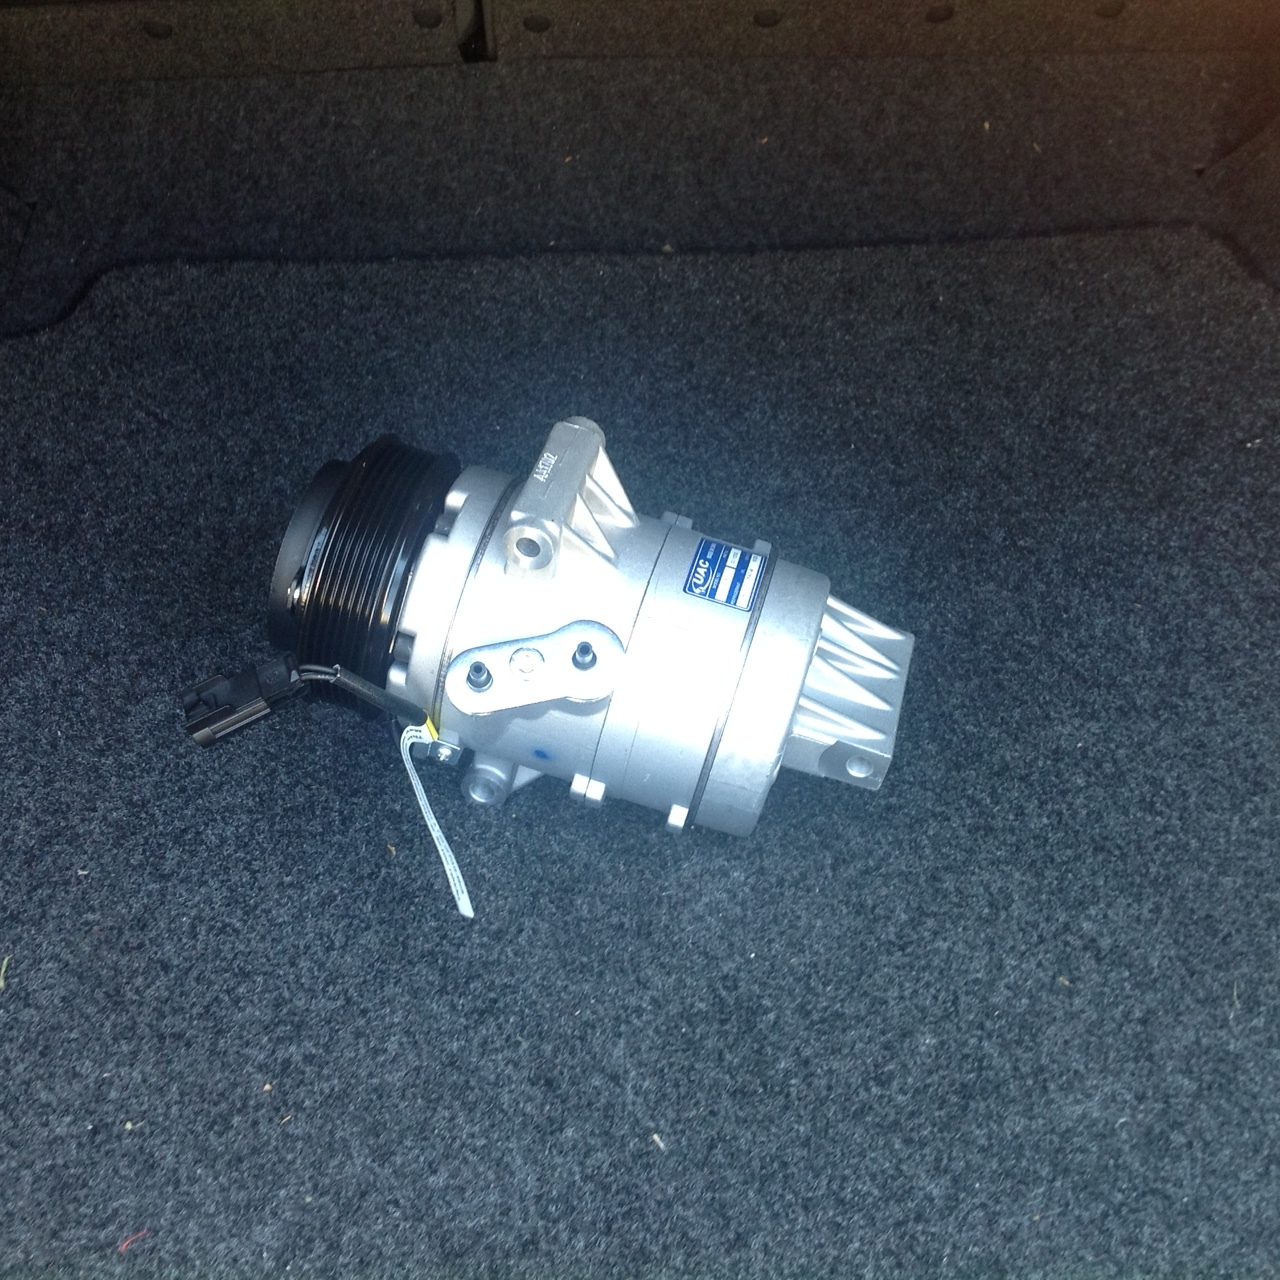 07-12 Lincoln MKZ 3.5 Auto AC Air Conditioning Compressor Replacement w/ Clutch